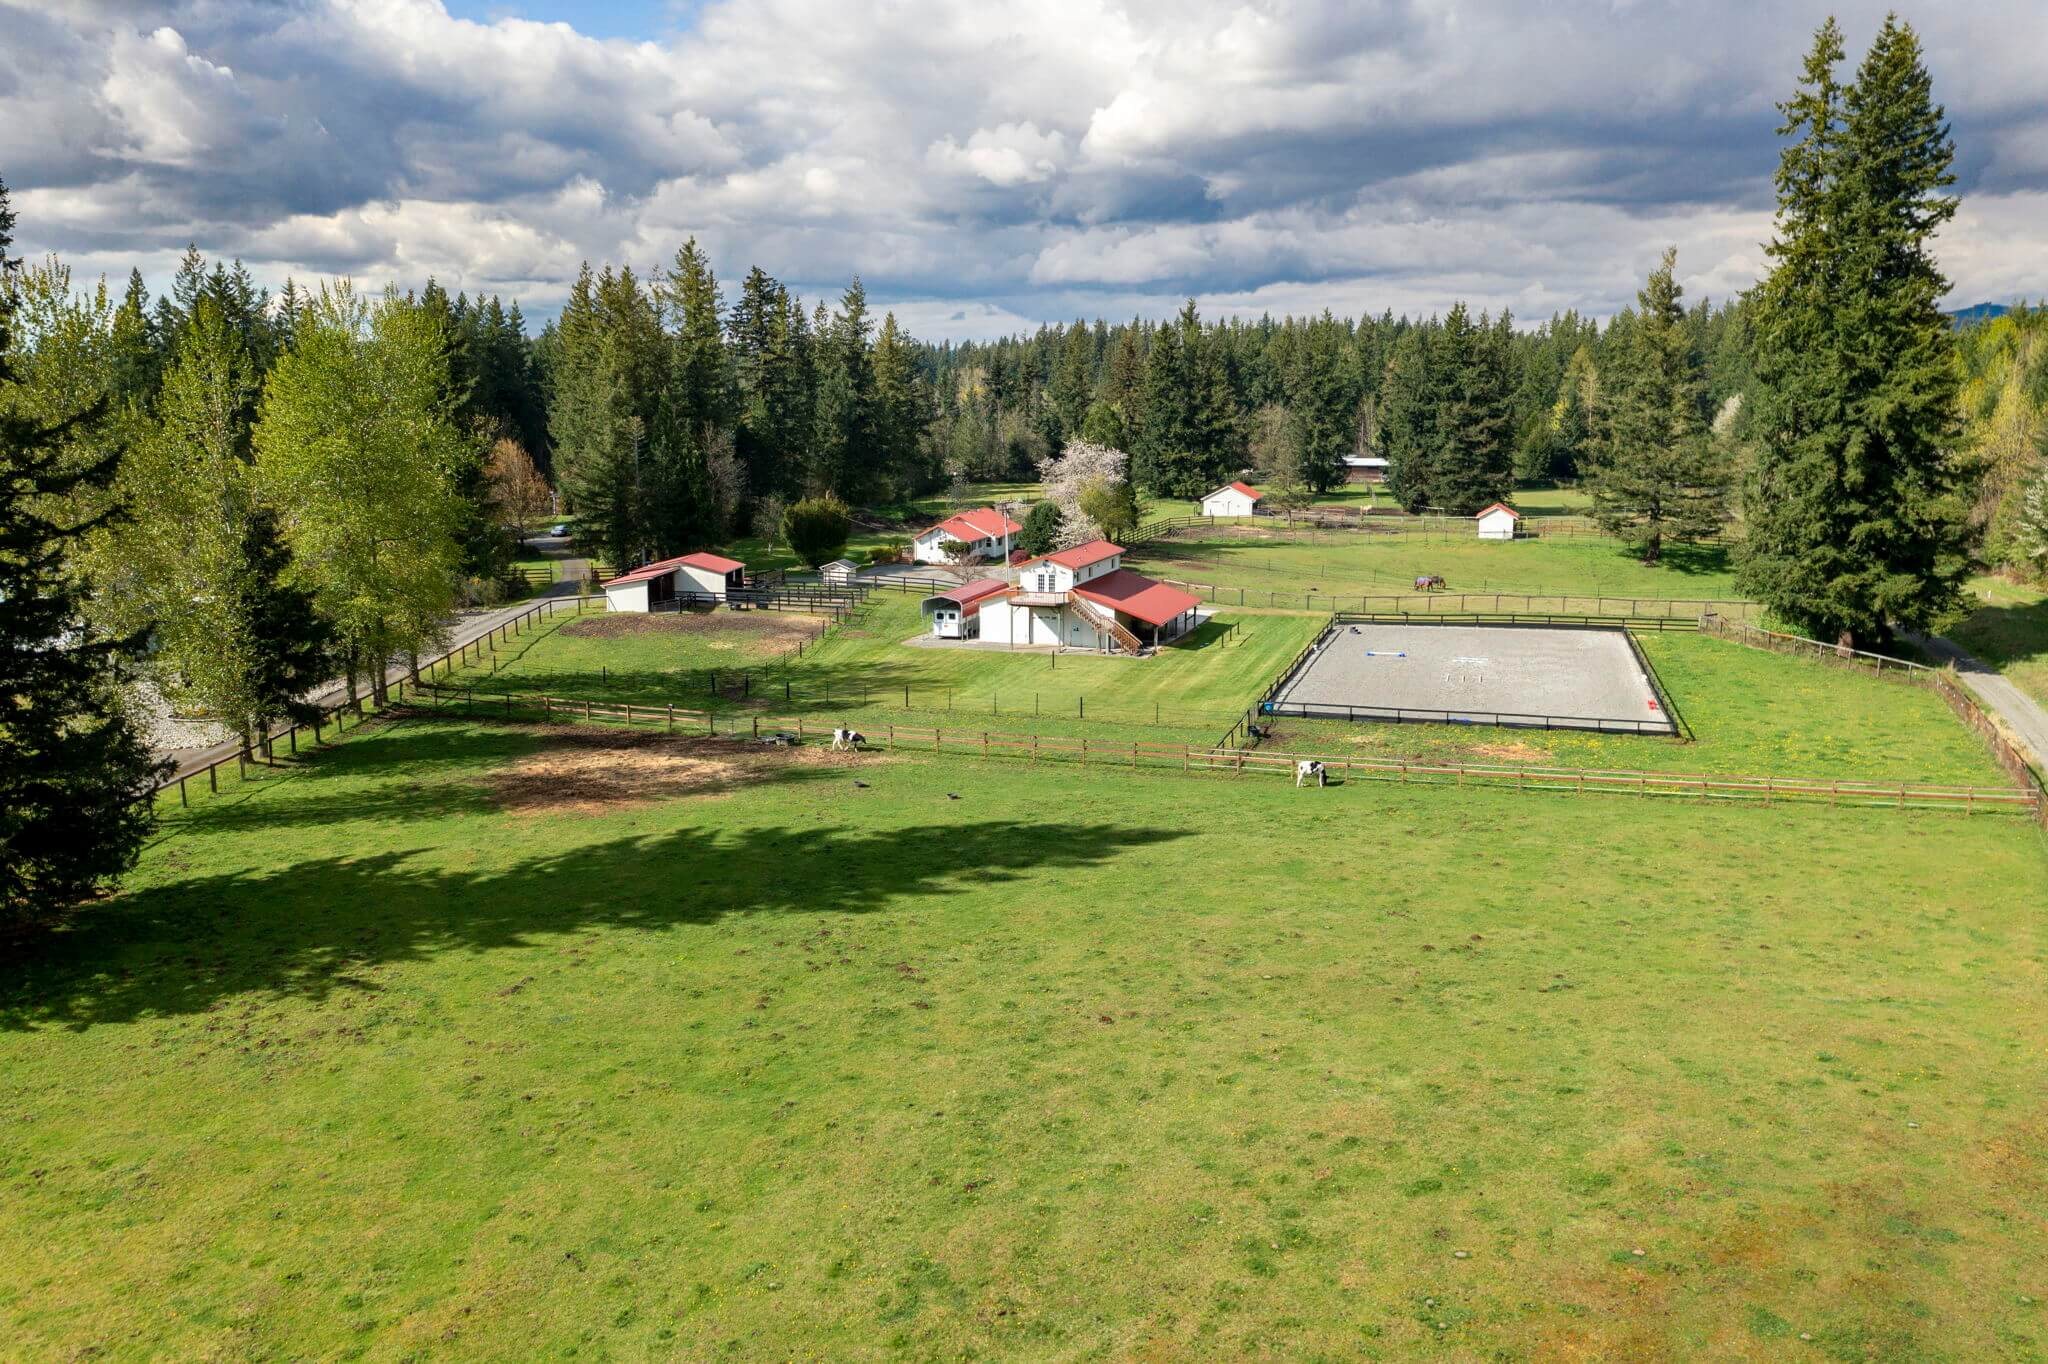 Seven separate pastures with plenty of room for grazing